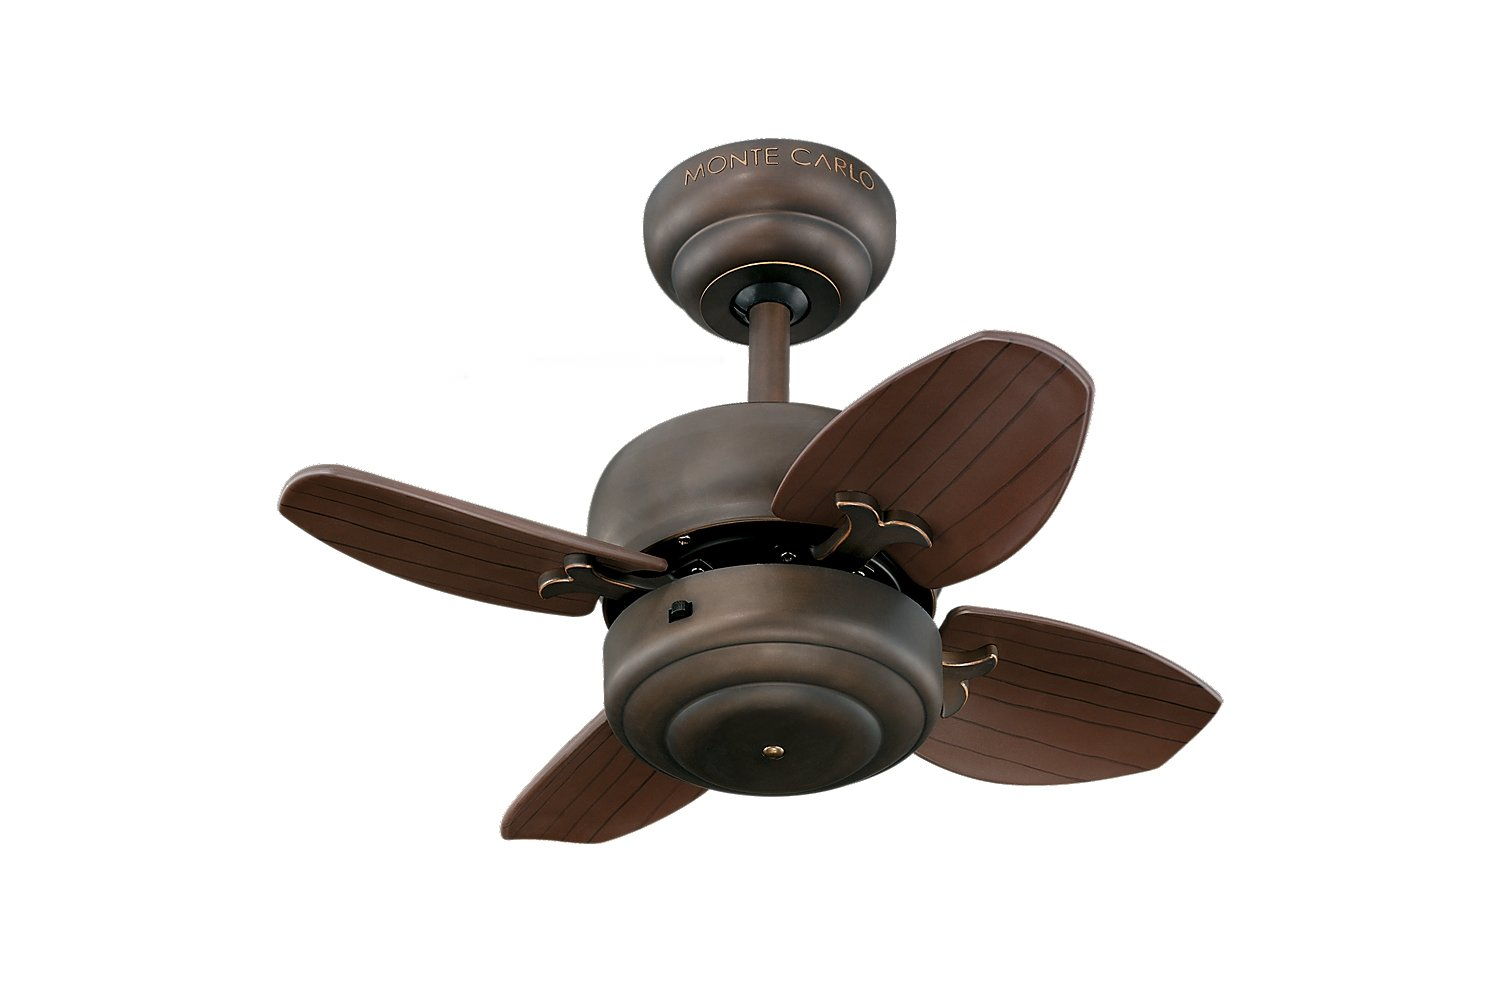 Monte carlo 4mc20rb mini ceiling fan 20 roman bronze amazon aloadofball Gallery